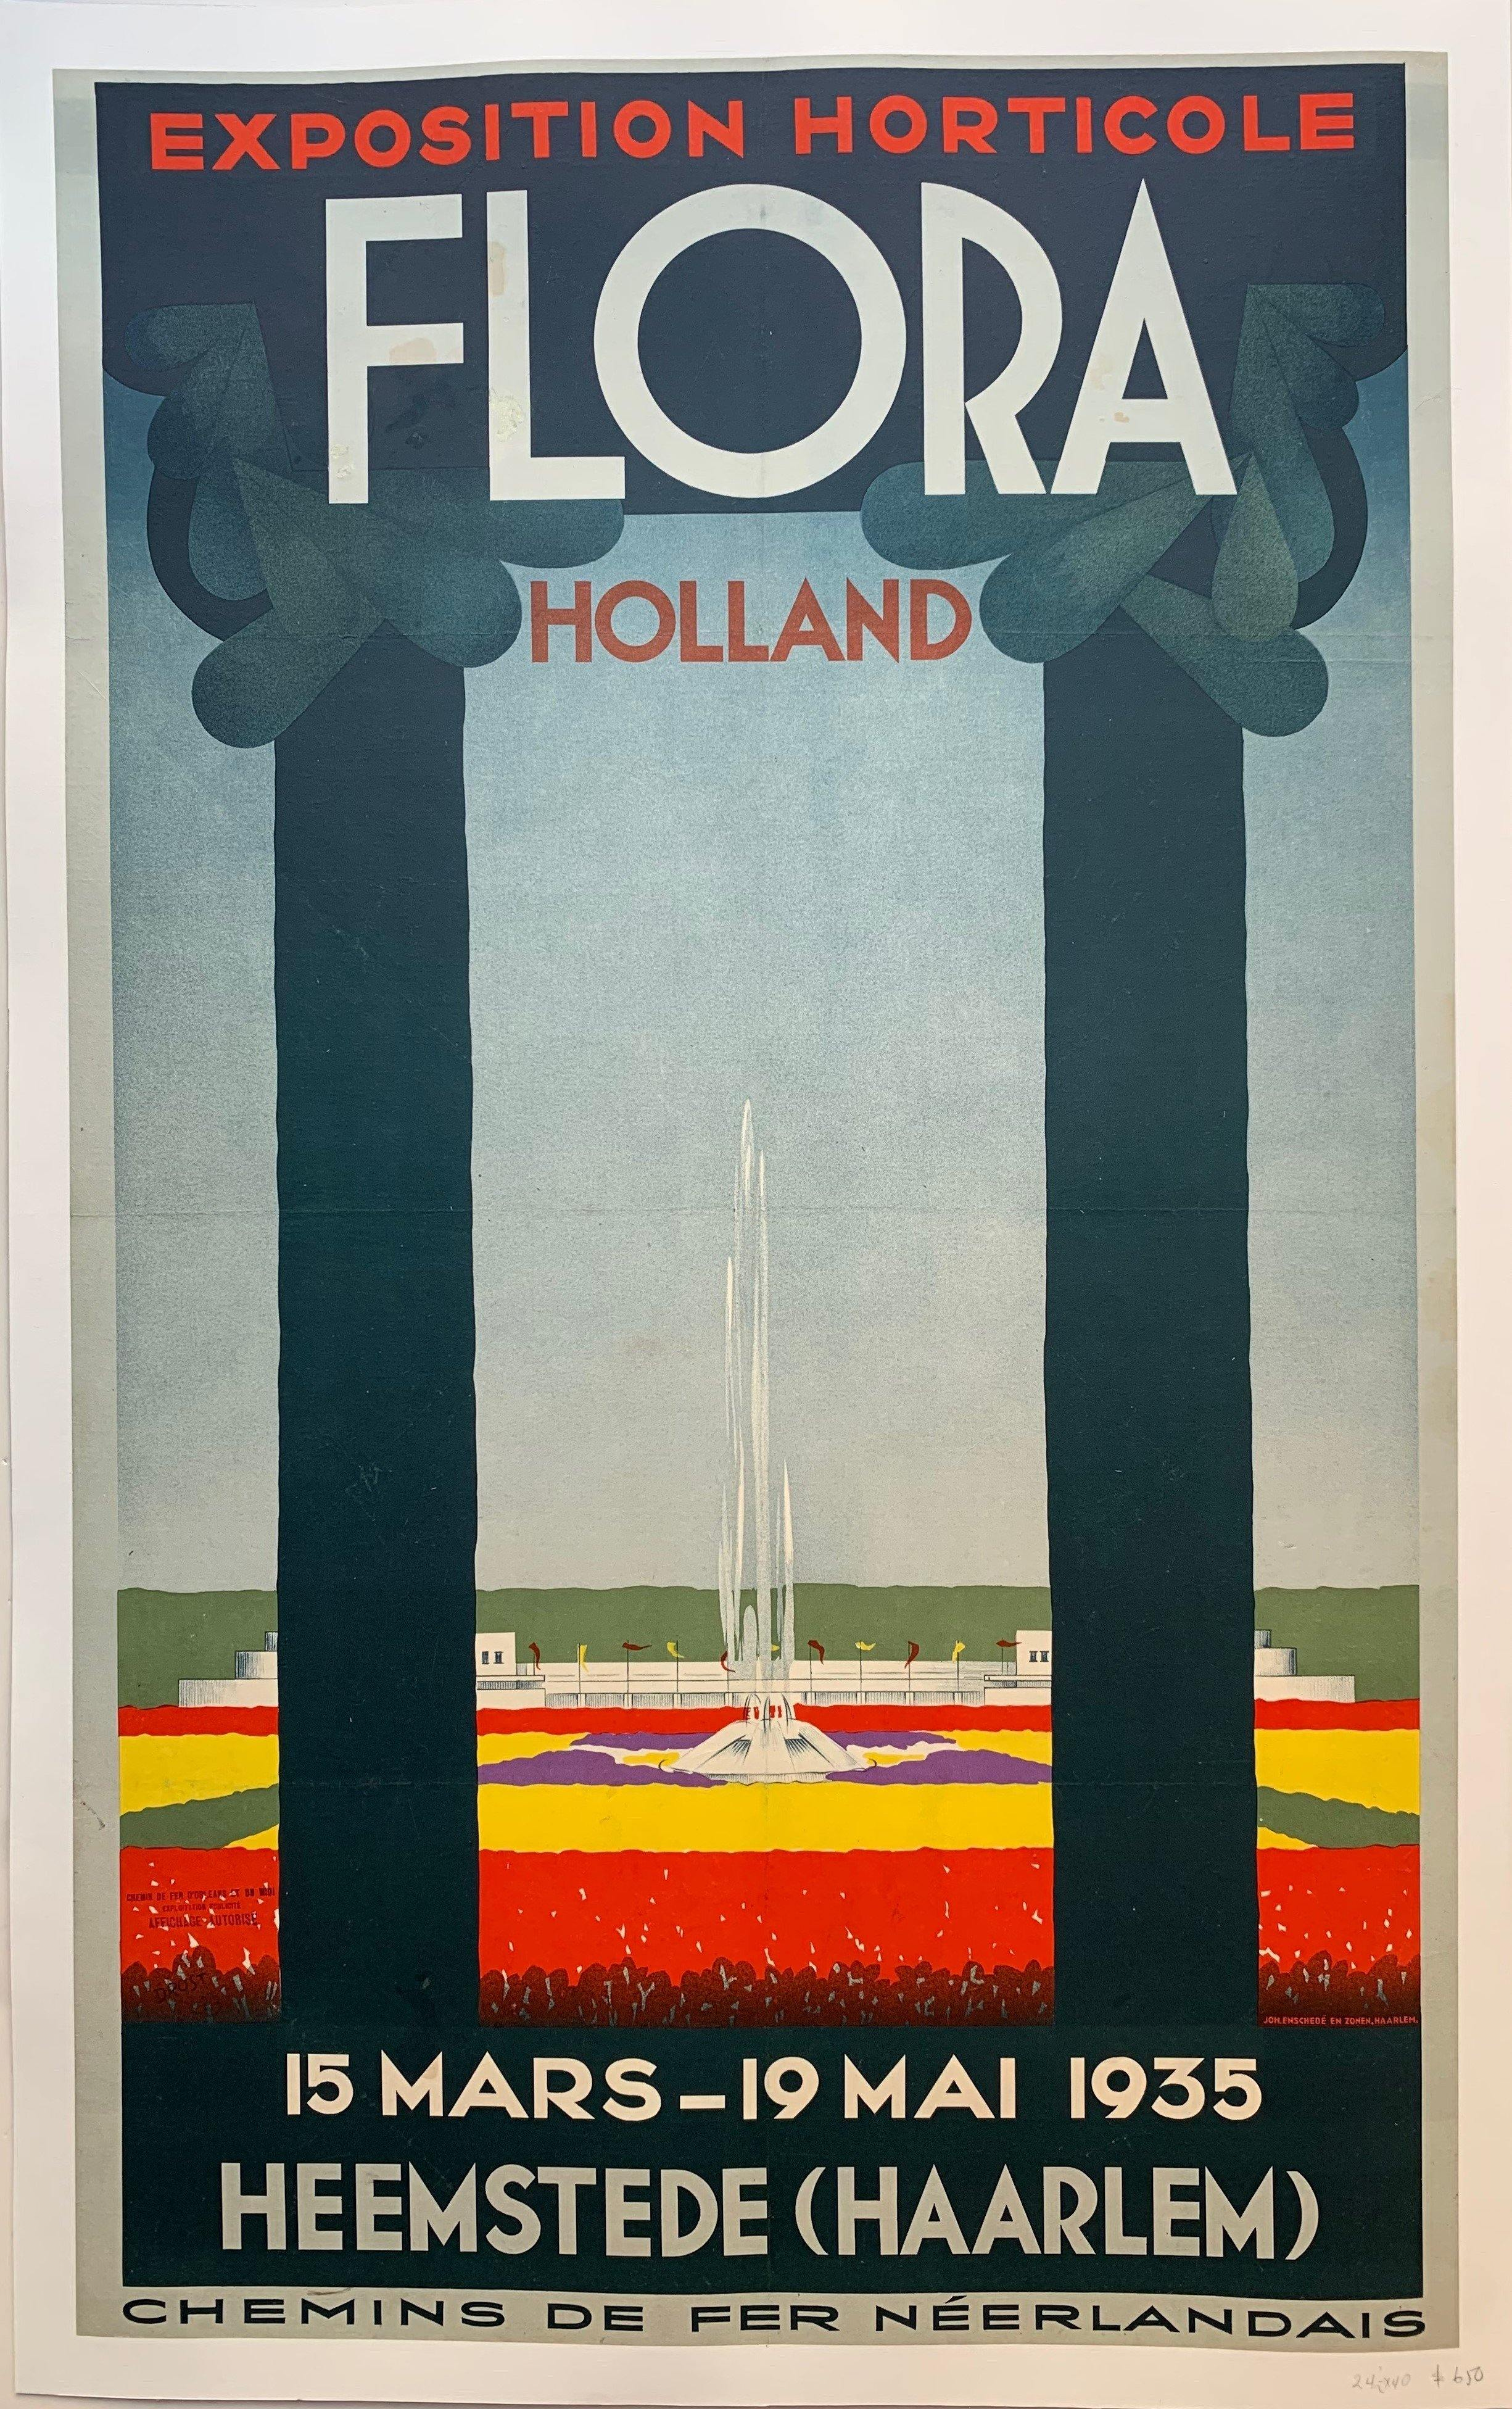 Exposition Horticole Flora Holland - Poster Museum